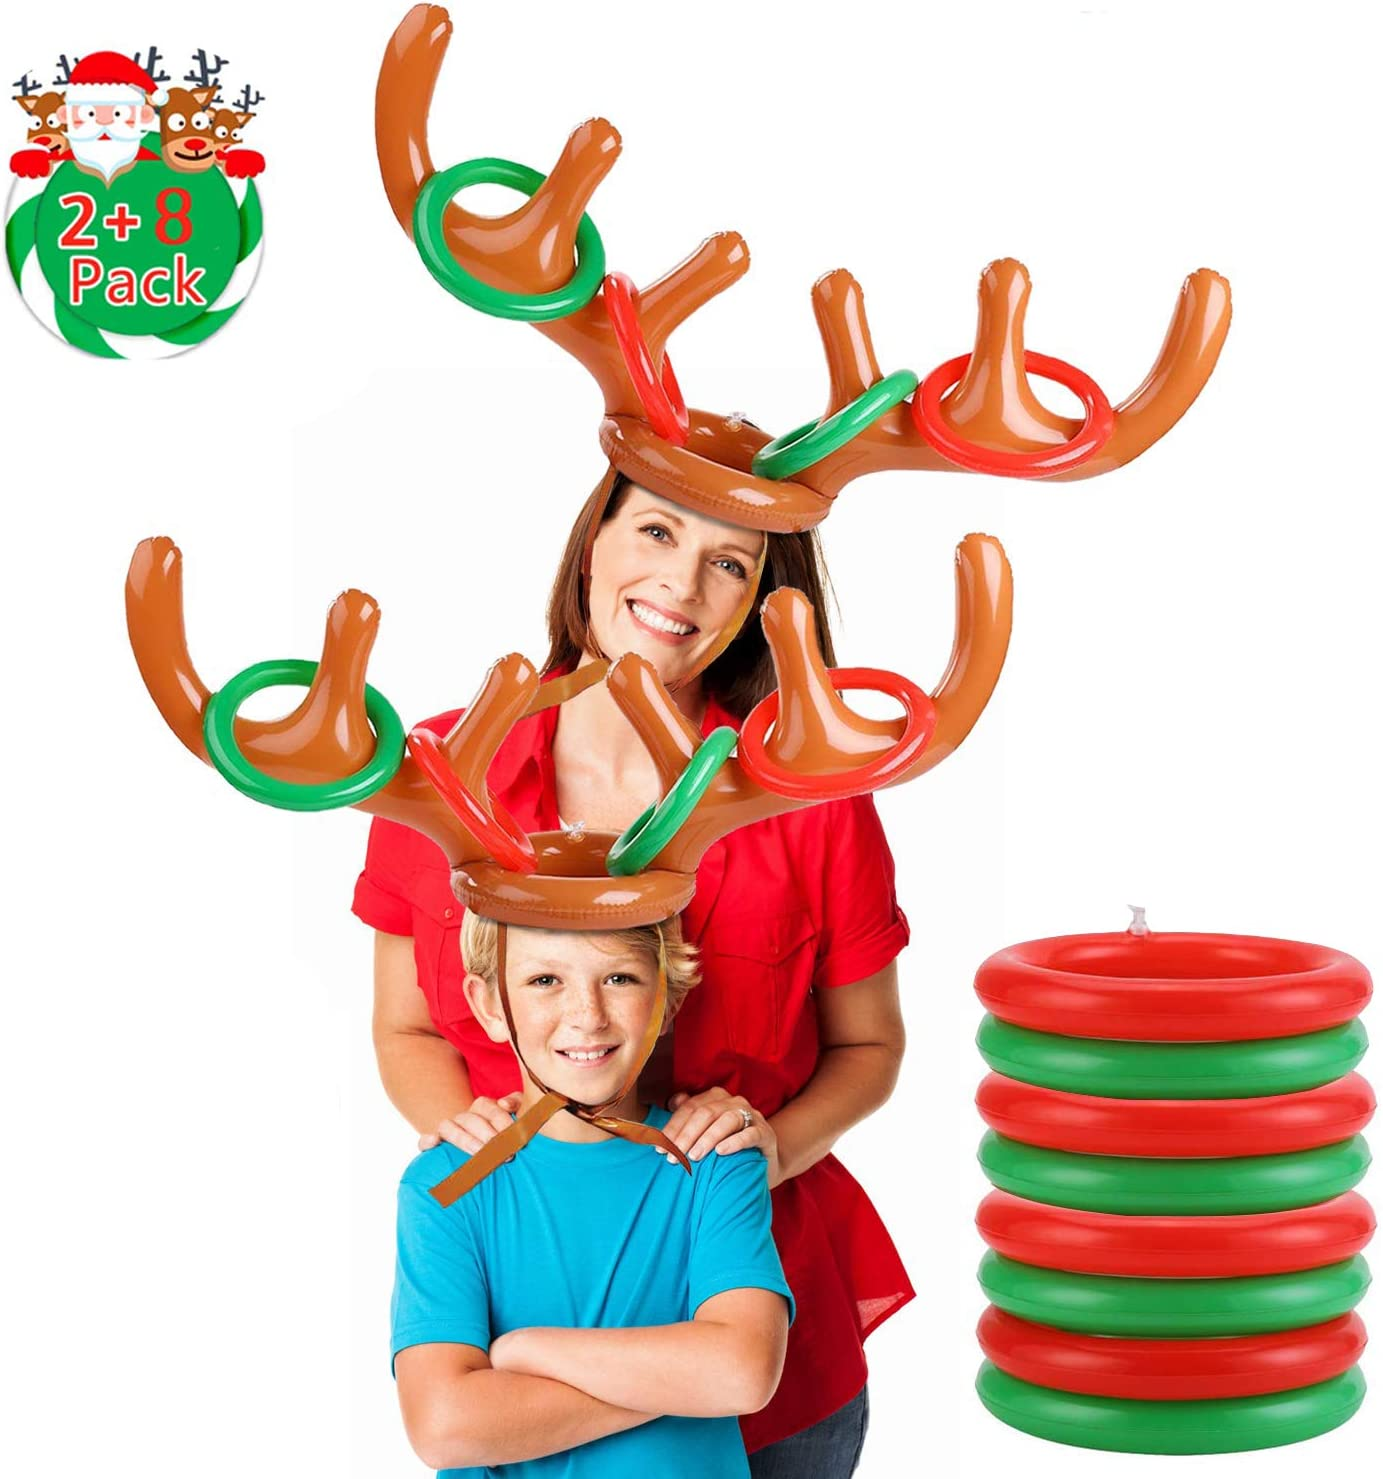 2 Inflatable Antler 12 Rings Reindeer Ring Toss Inflatable Reindeer Antler Hat With Rings Anisqui 2